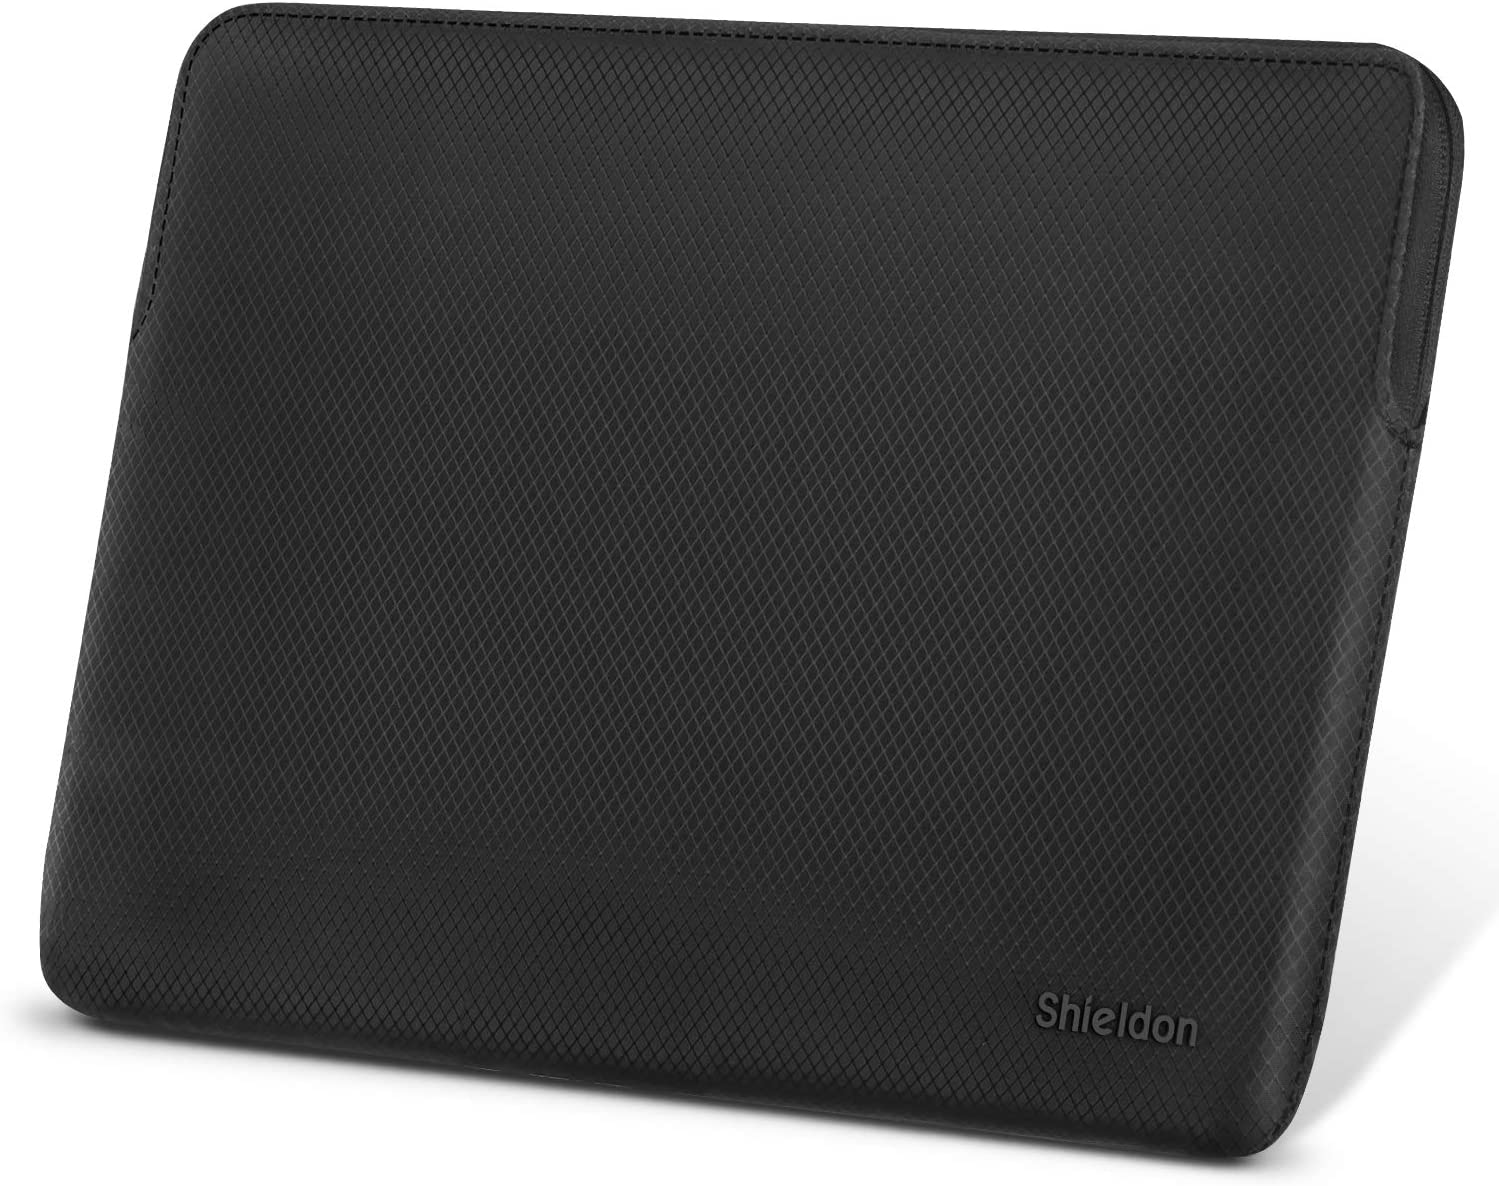 SHIELDON Laptop Case Sleeve,13-13.3 Inch Water Resistant Laptop Sleeve/Notebook Pocket Case/Tablet Briefcase Carrying Bag Compatible with MacBook Air Retina,MacBook Pro Retina,Inspiron 7000 - Black